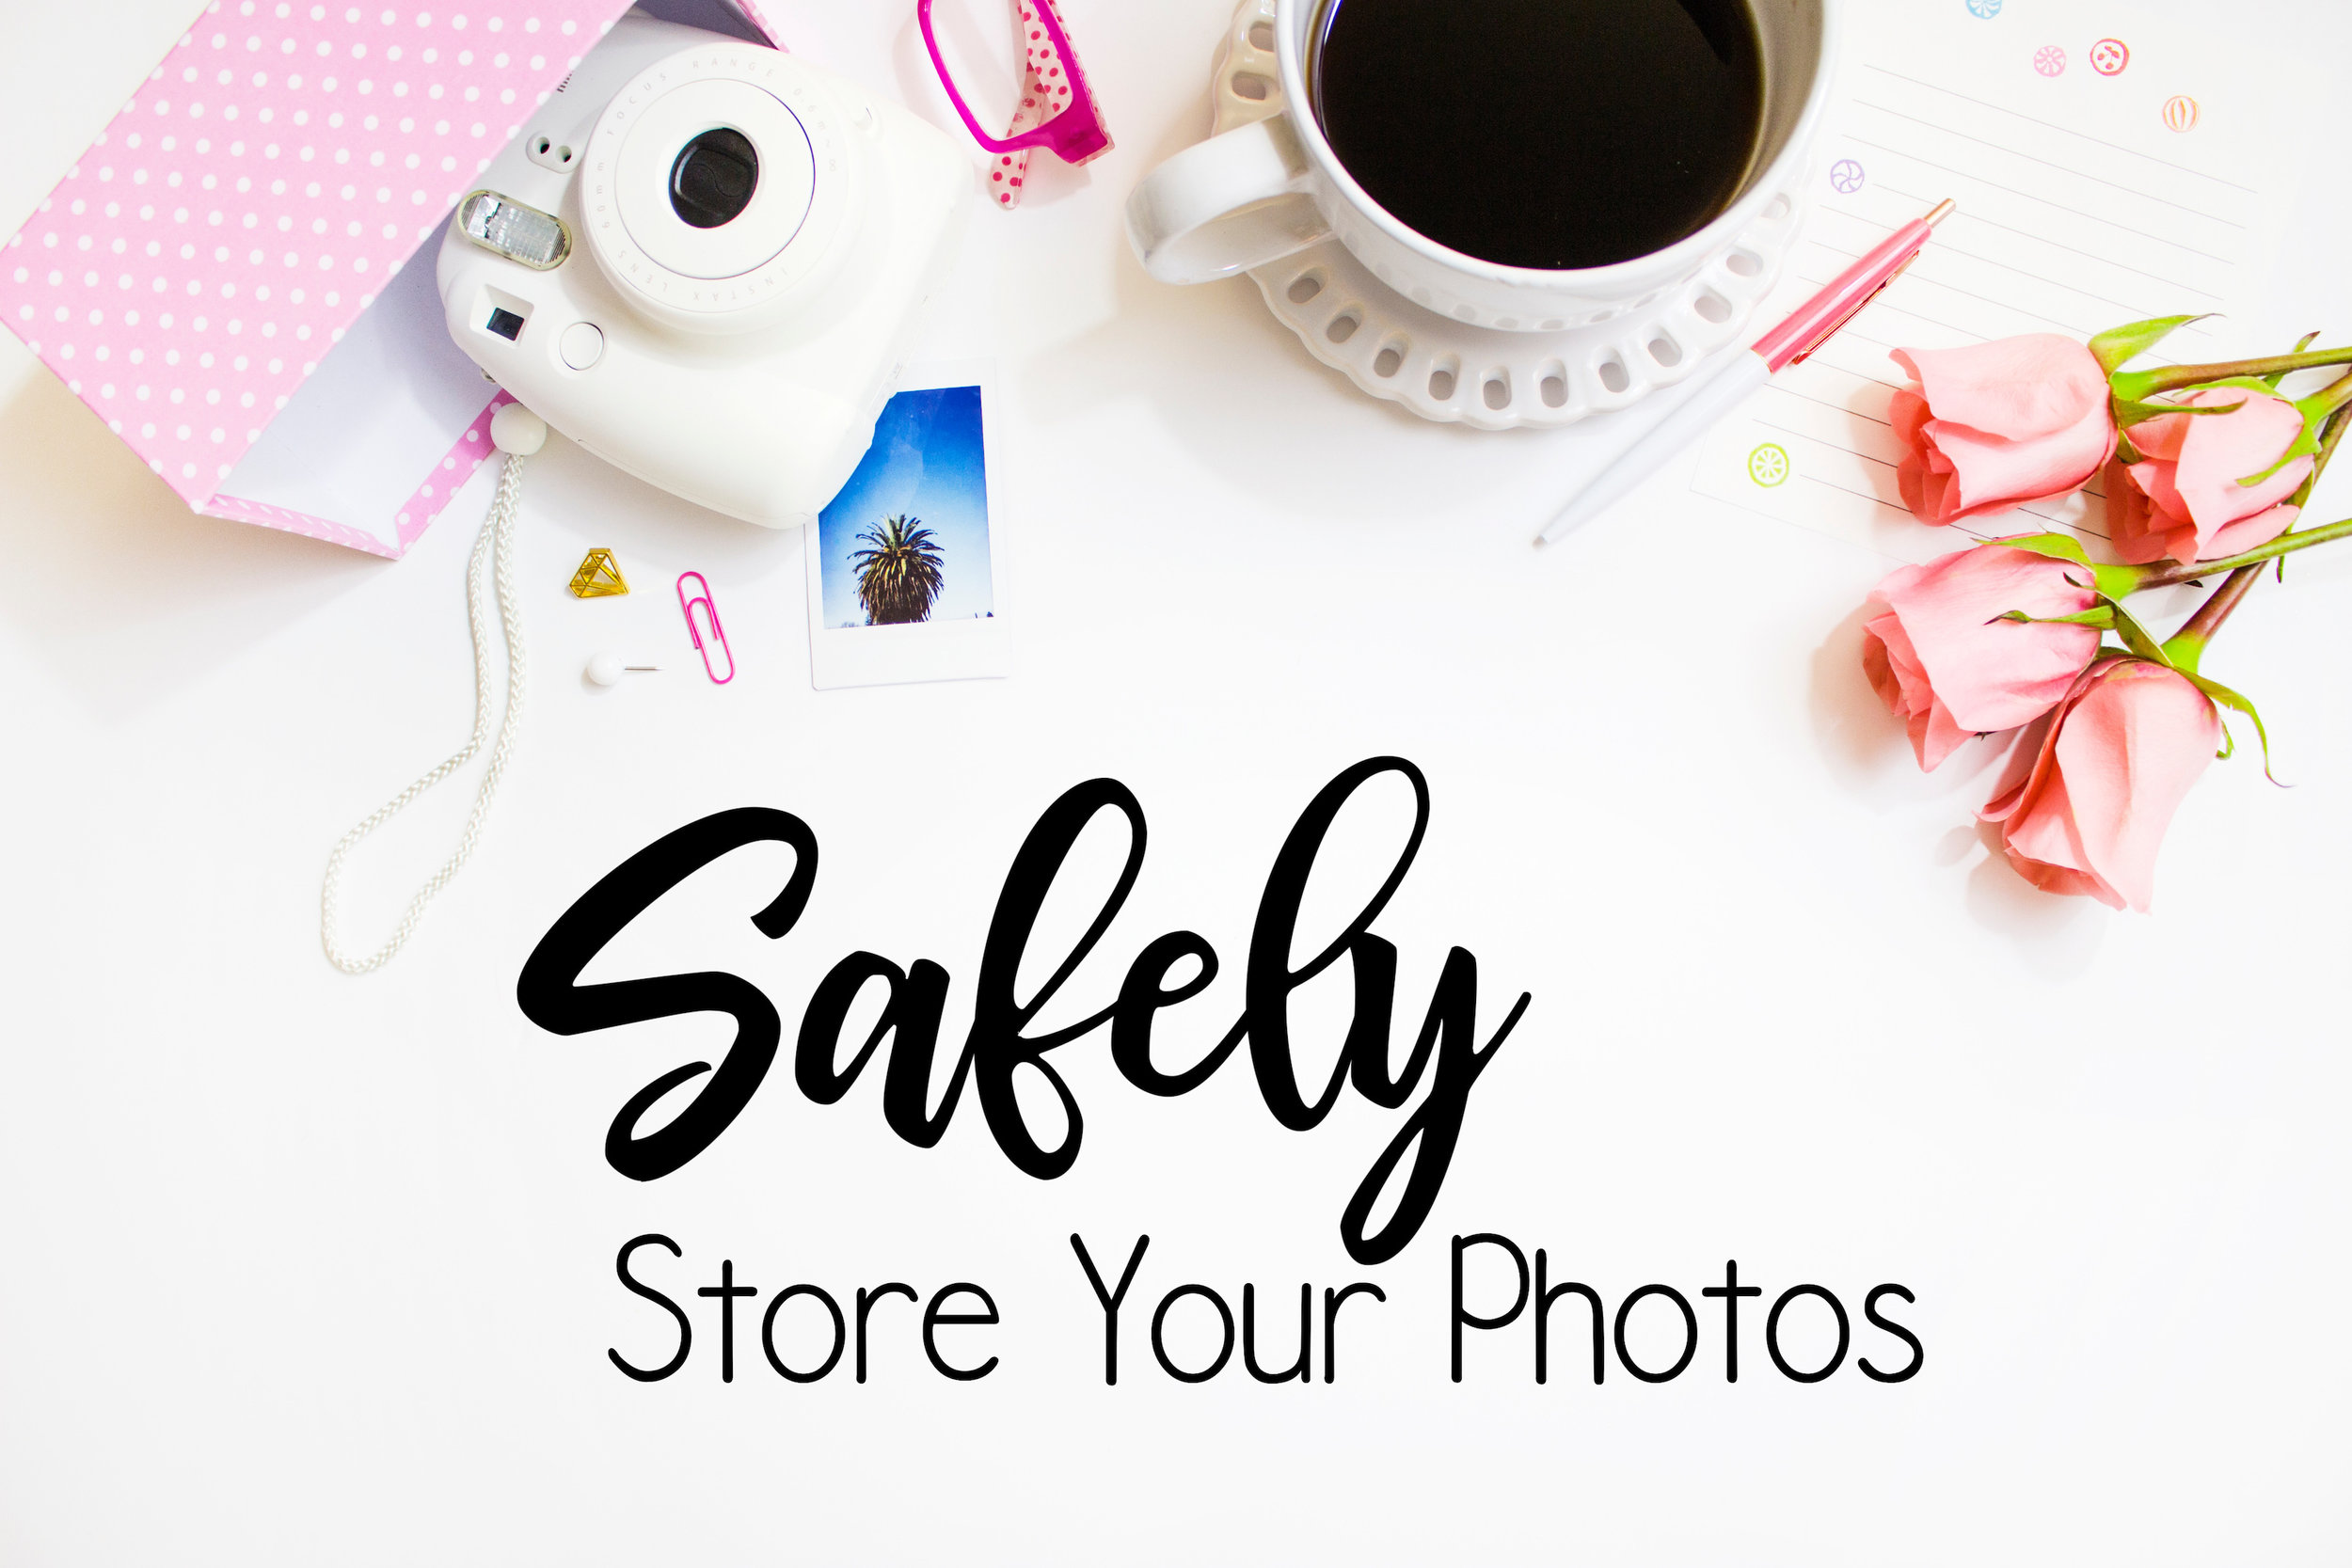 Safely Store Your Photos.jpg